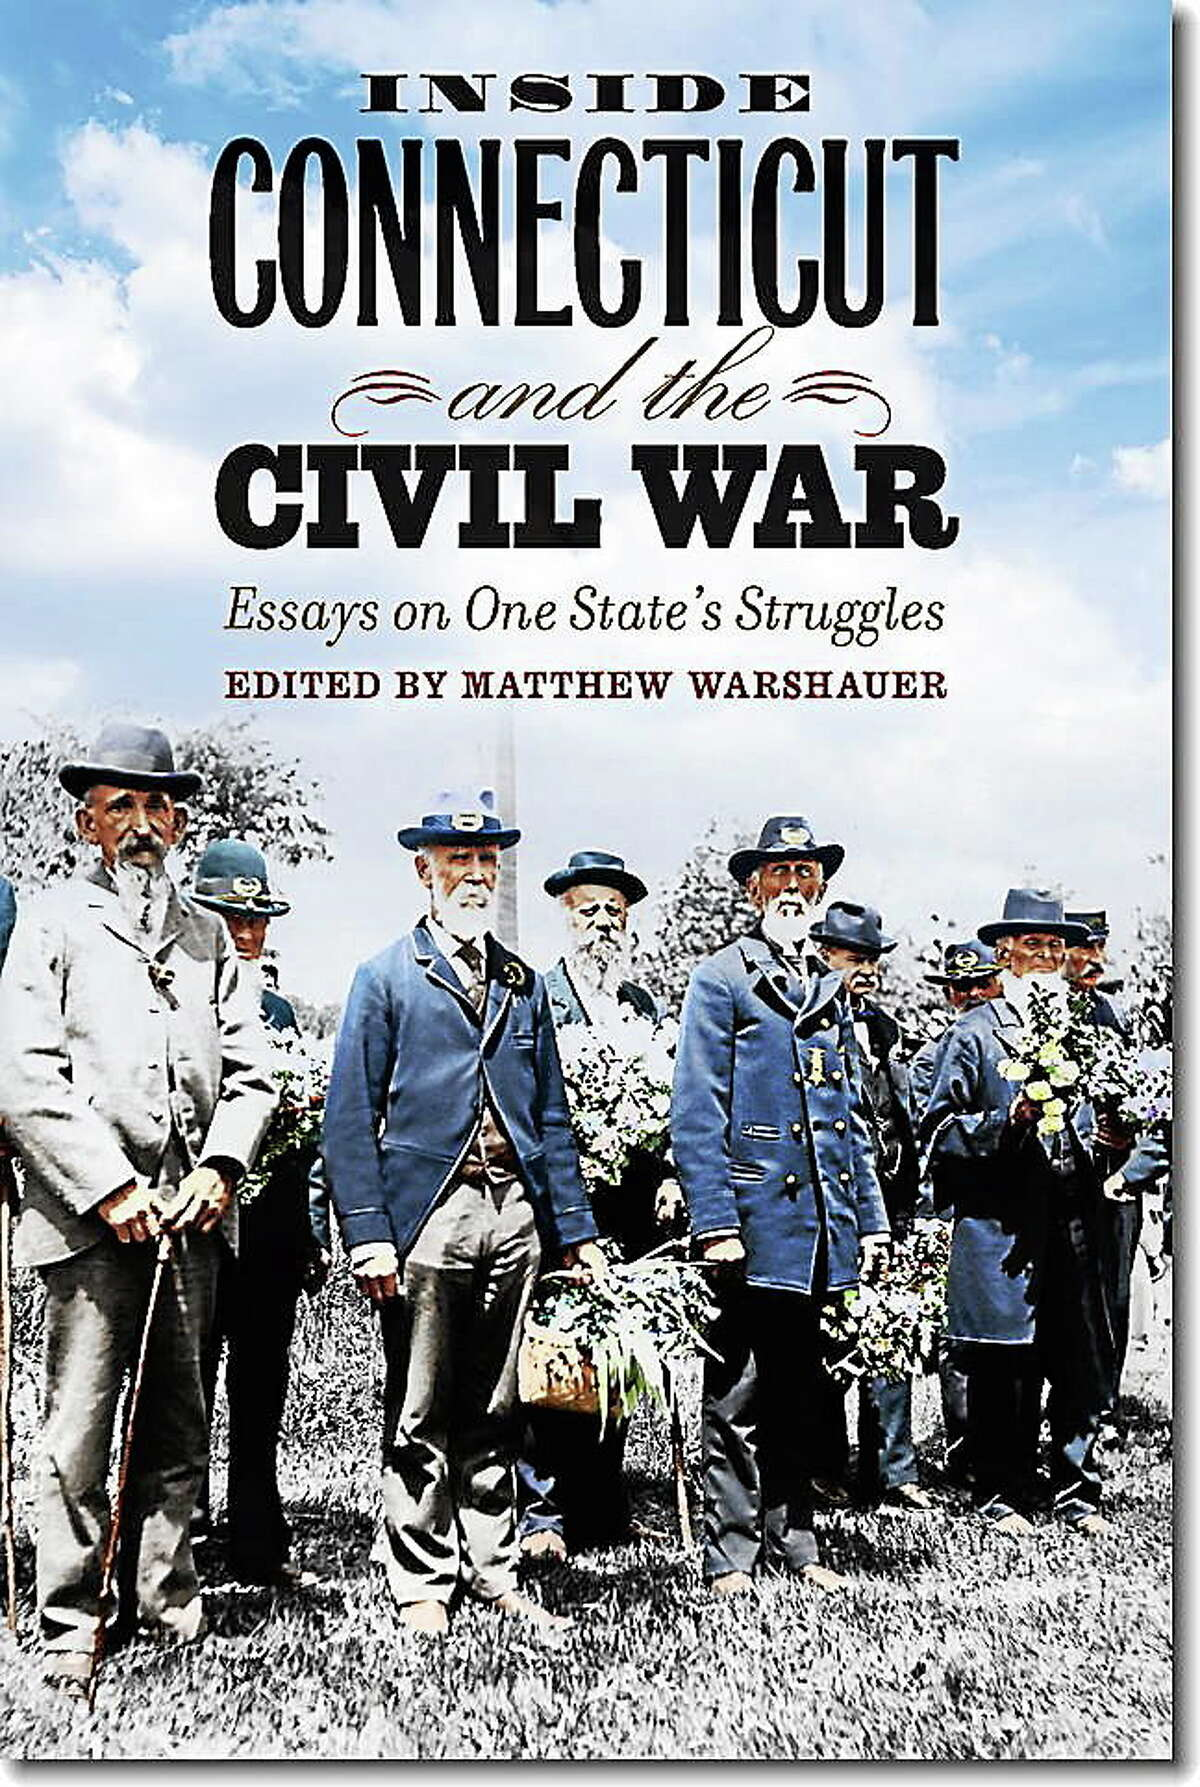 Inside Connecticut and the Civil War: Essays on One's State's Struggles is written by Historian Matthew Warshauer.